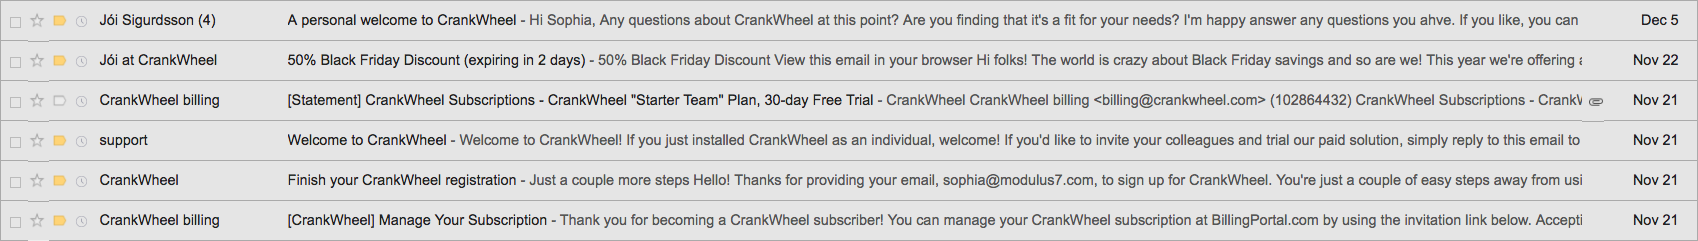 For more about CrankWheel, keep scrolling to find my sample review of their emails.